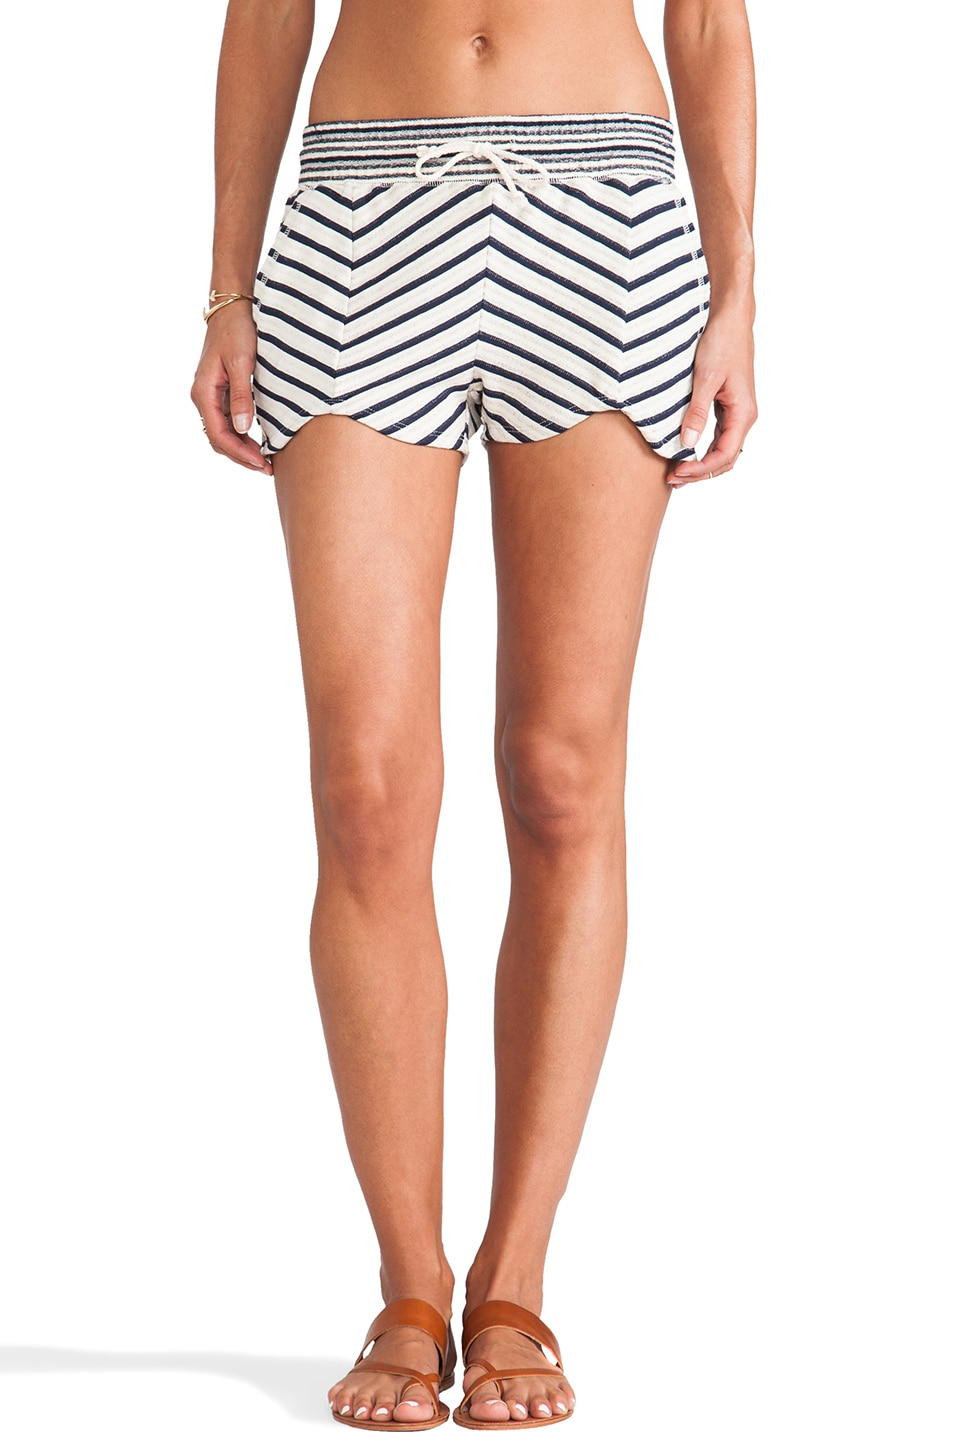 LA Made Striped Short in Navy & Cream